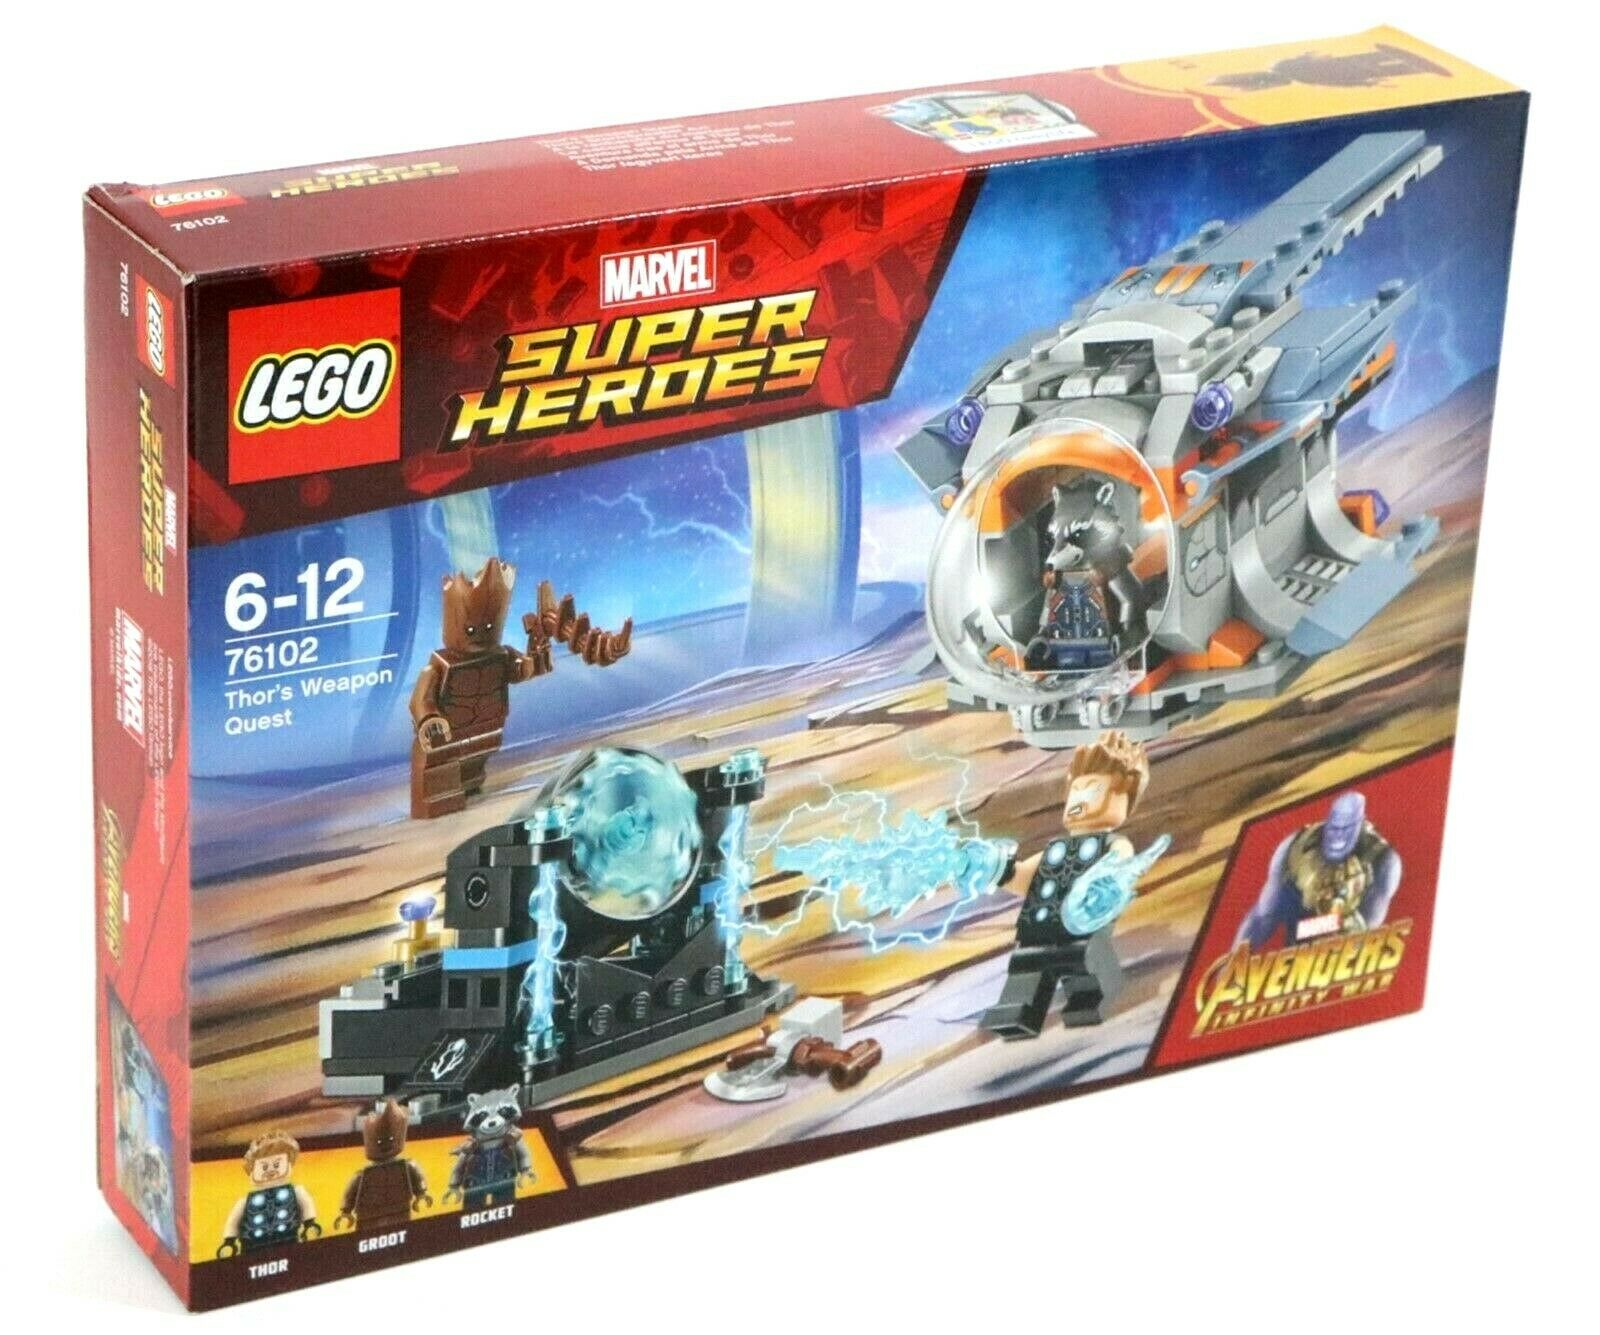 LEGO MARVEL AVENGERS 76102 THORS WEAPON QUEST SET - BNIB